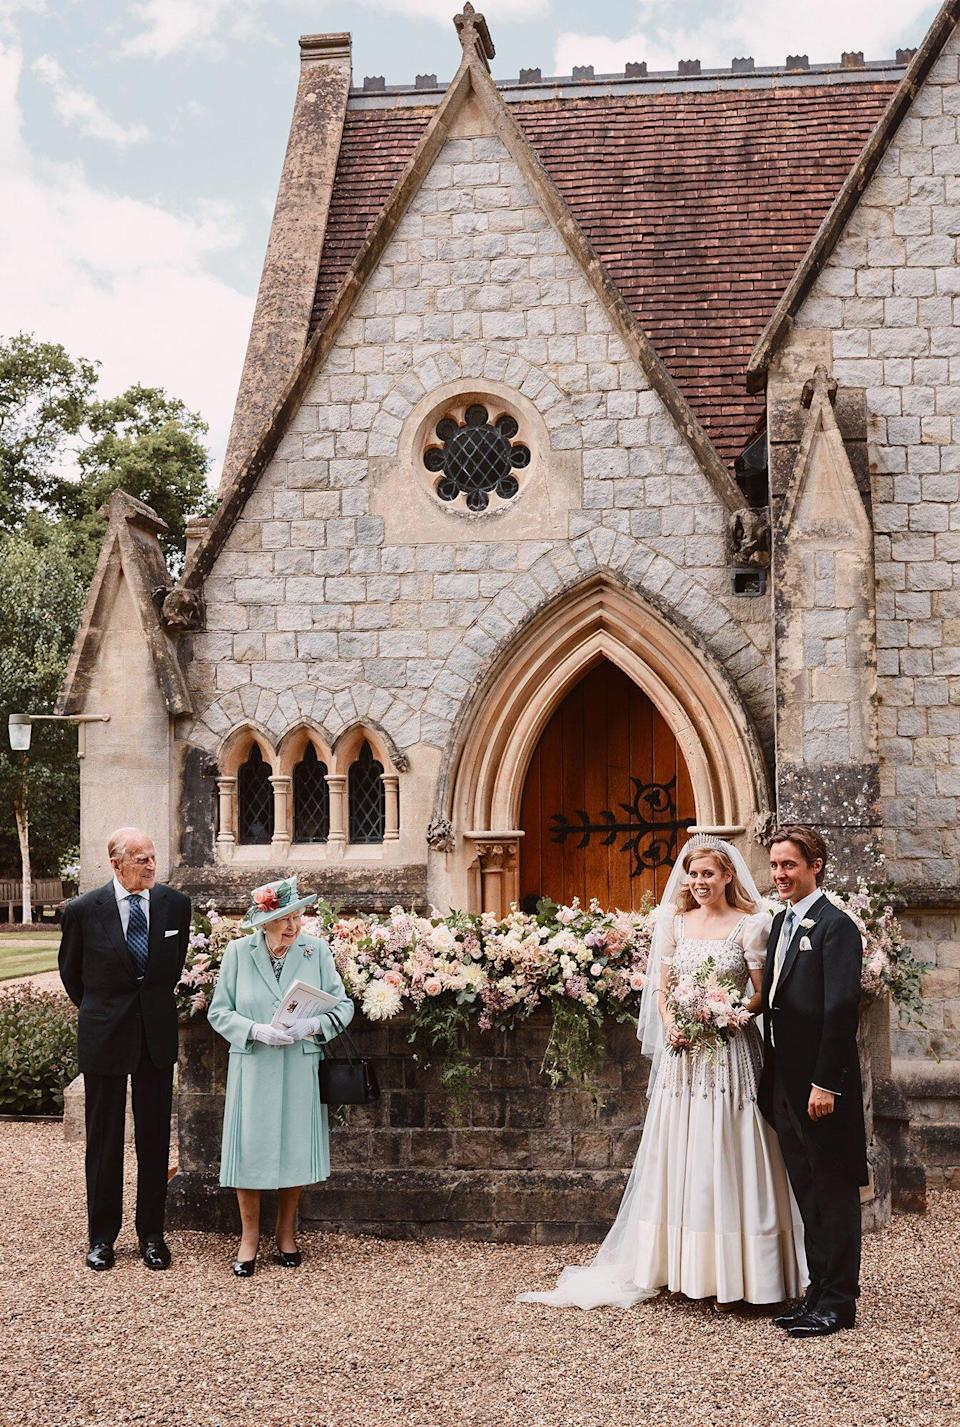 Embargoed: Not for publication or onward transmission before 2200 BST Saturday July 18, 2020. Princess Beatrice wedding